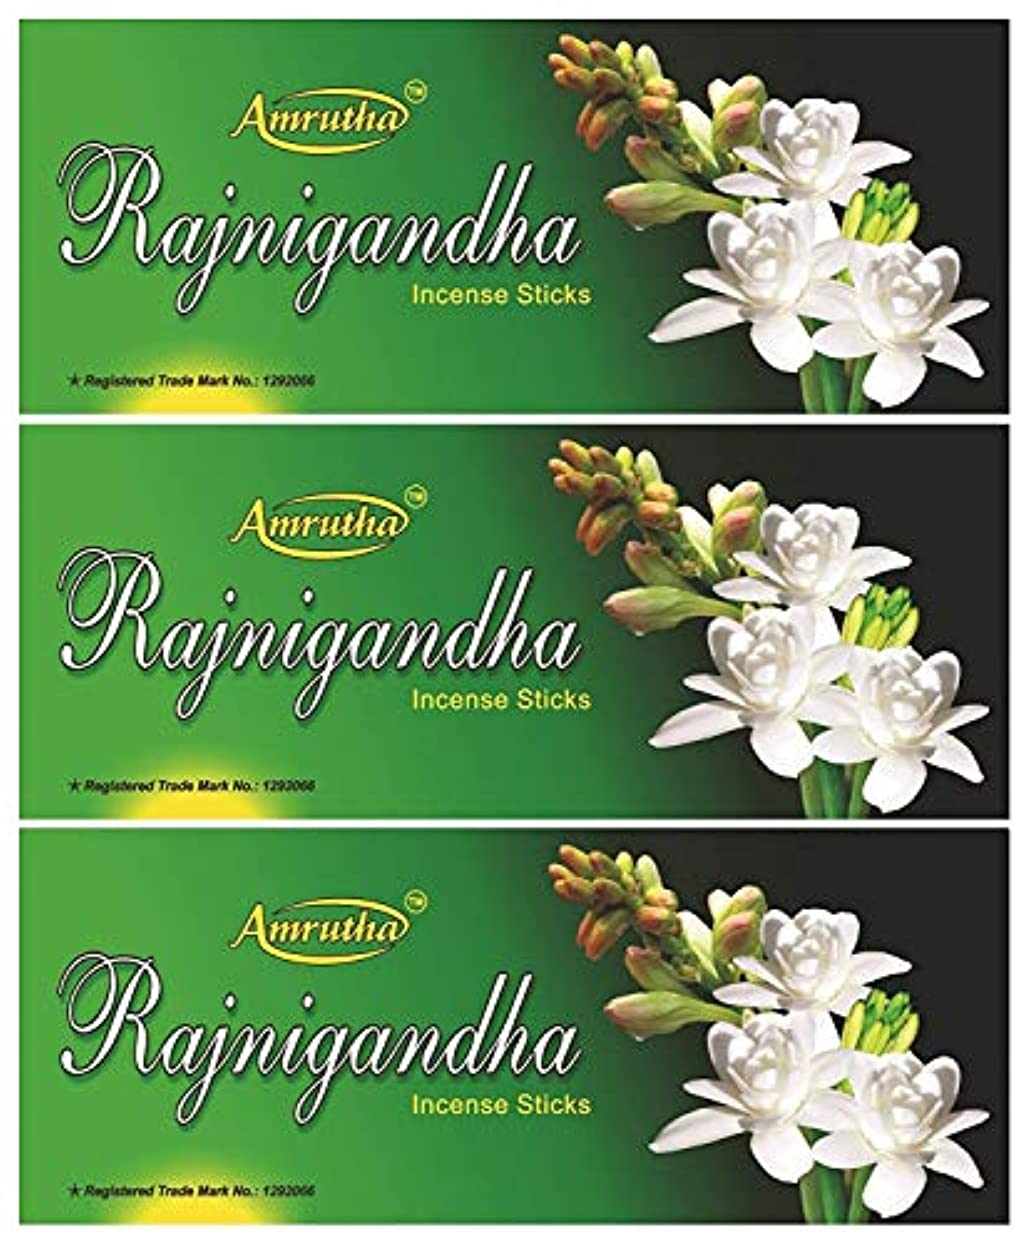 素敵なコロニアル崇拝しますAMRUTHA PREMIUM INCENSE STICKS Rajnigandha Incense Sticks (100g, Black) - Pack of 3